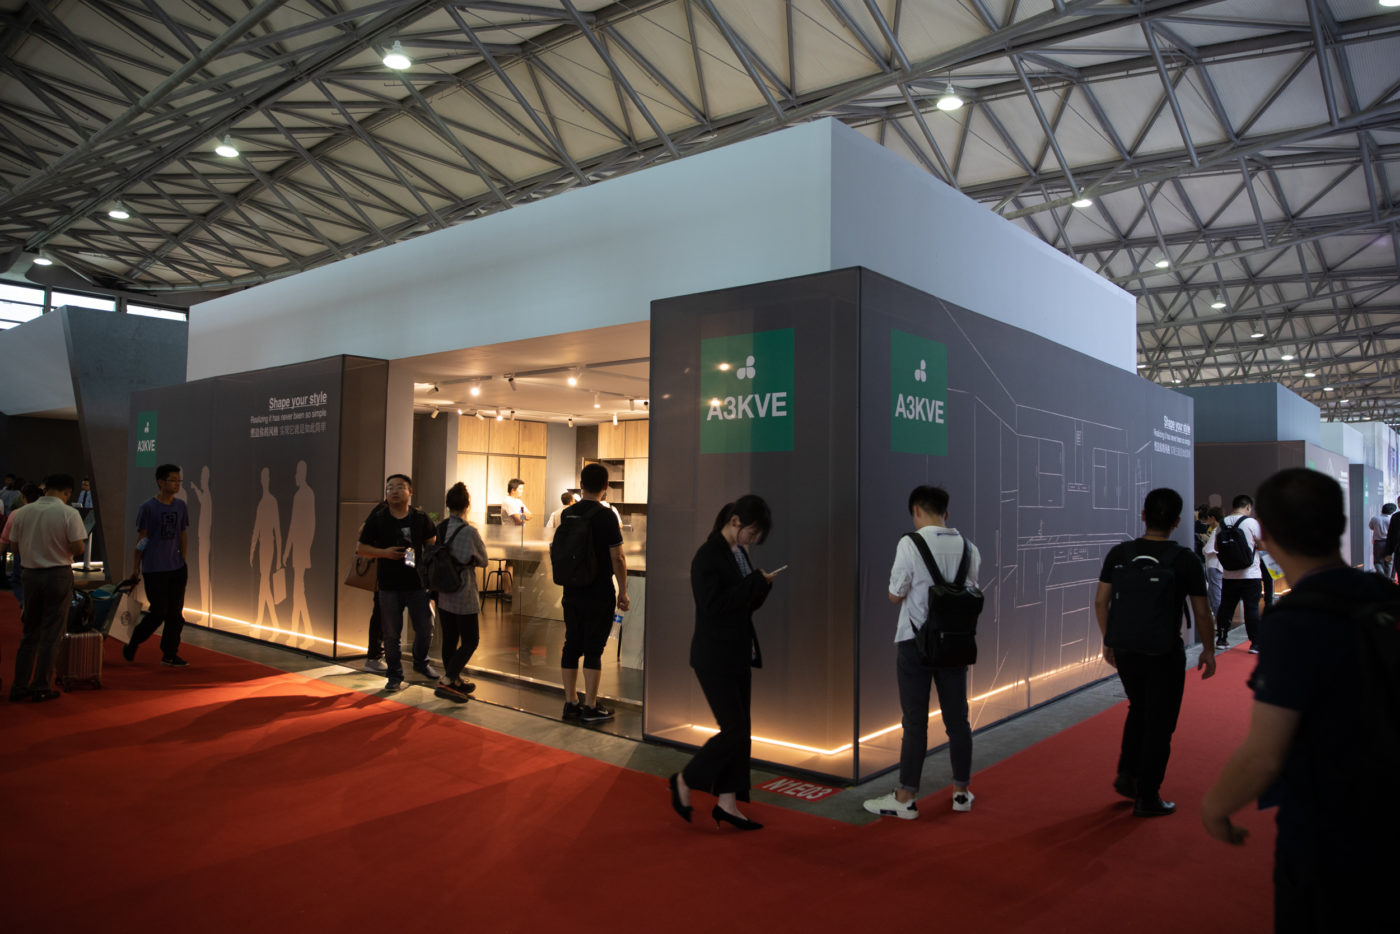 Grand succès pour Arredo3 au Kitchen & Bath 2019 Chine - 10